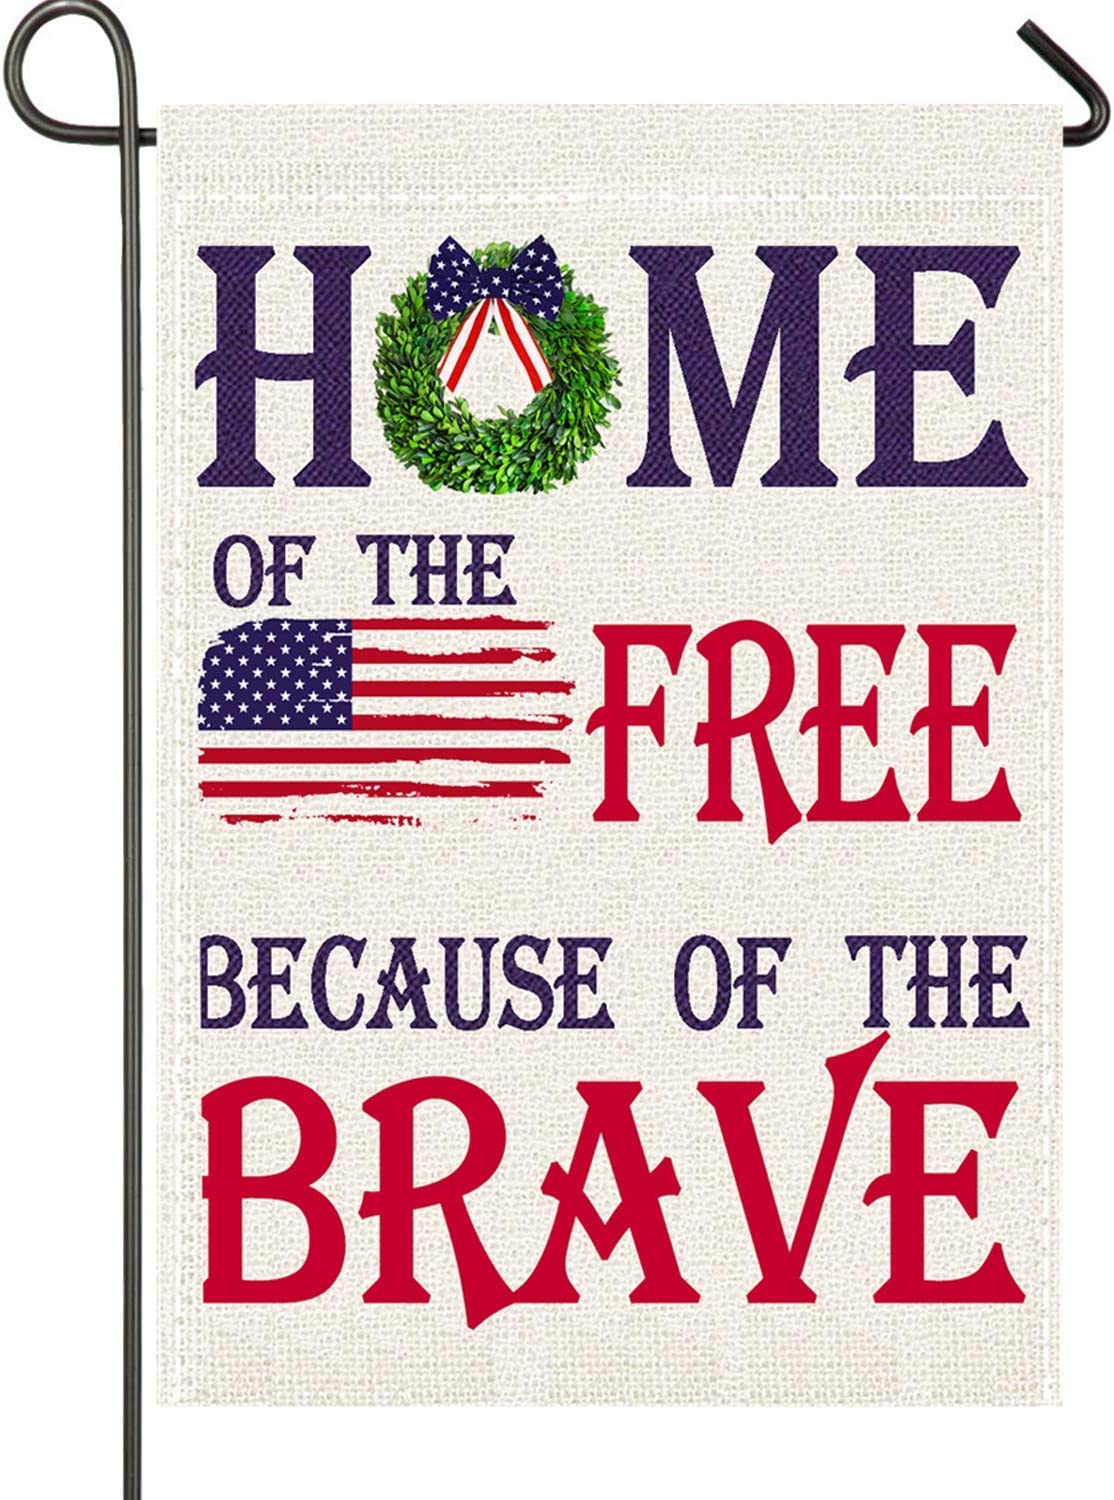 Patriotic Garden Flag,4th of July Memorial Day Veterans Day Burlap Garden Yard Outdoor Decoration,Home of The Free,Because of The Brave